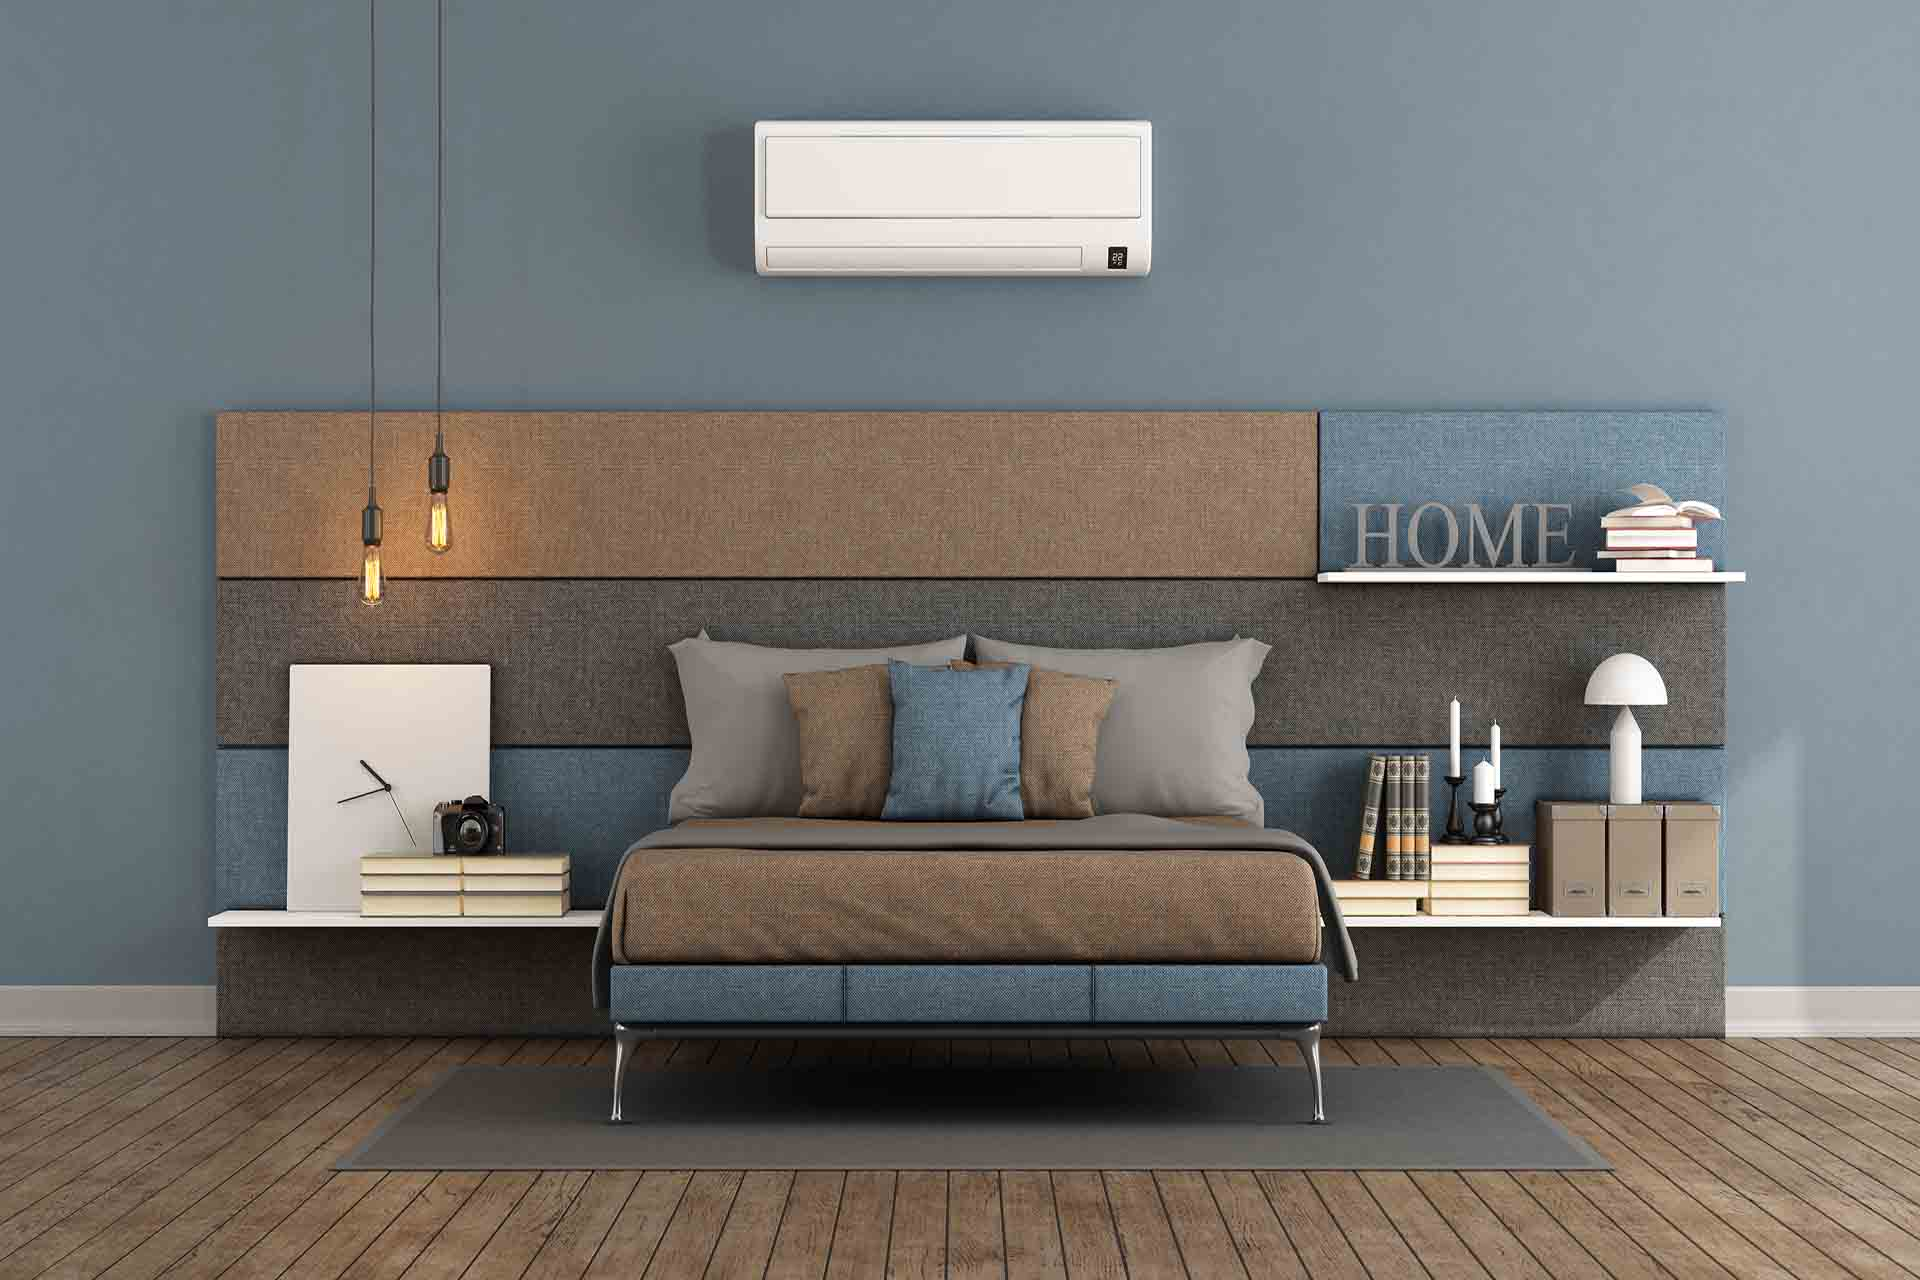 5 Maintenance Tips for Ductless Air Conditioners